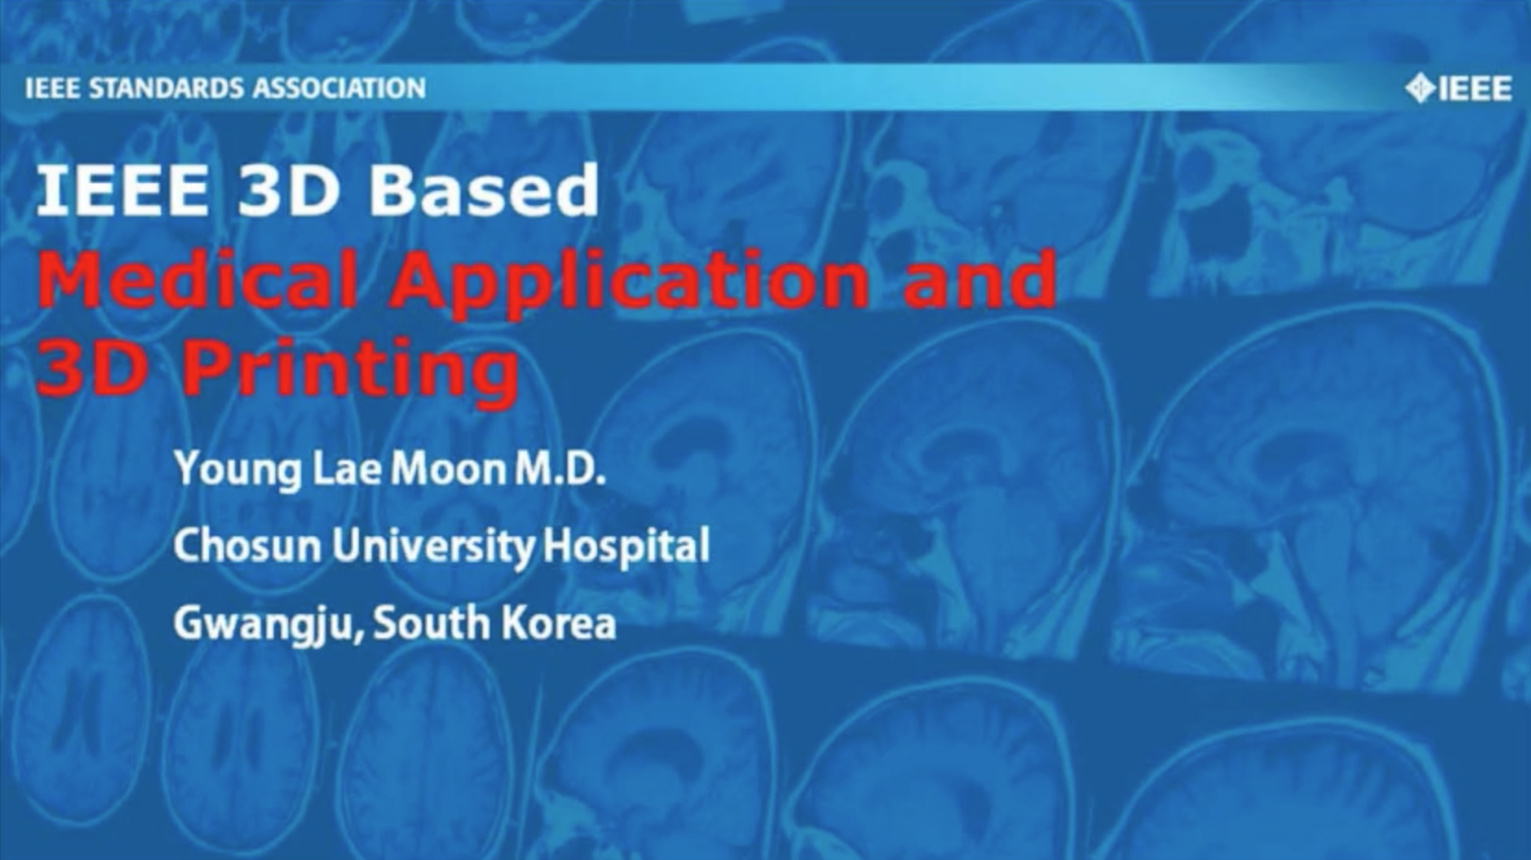 IEEE 3D Standards-Based Medical Applications and 3D Printing: Young Lae Moon